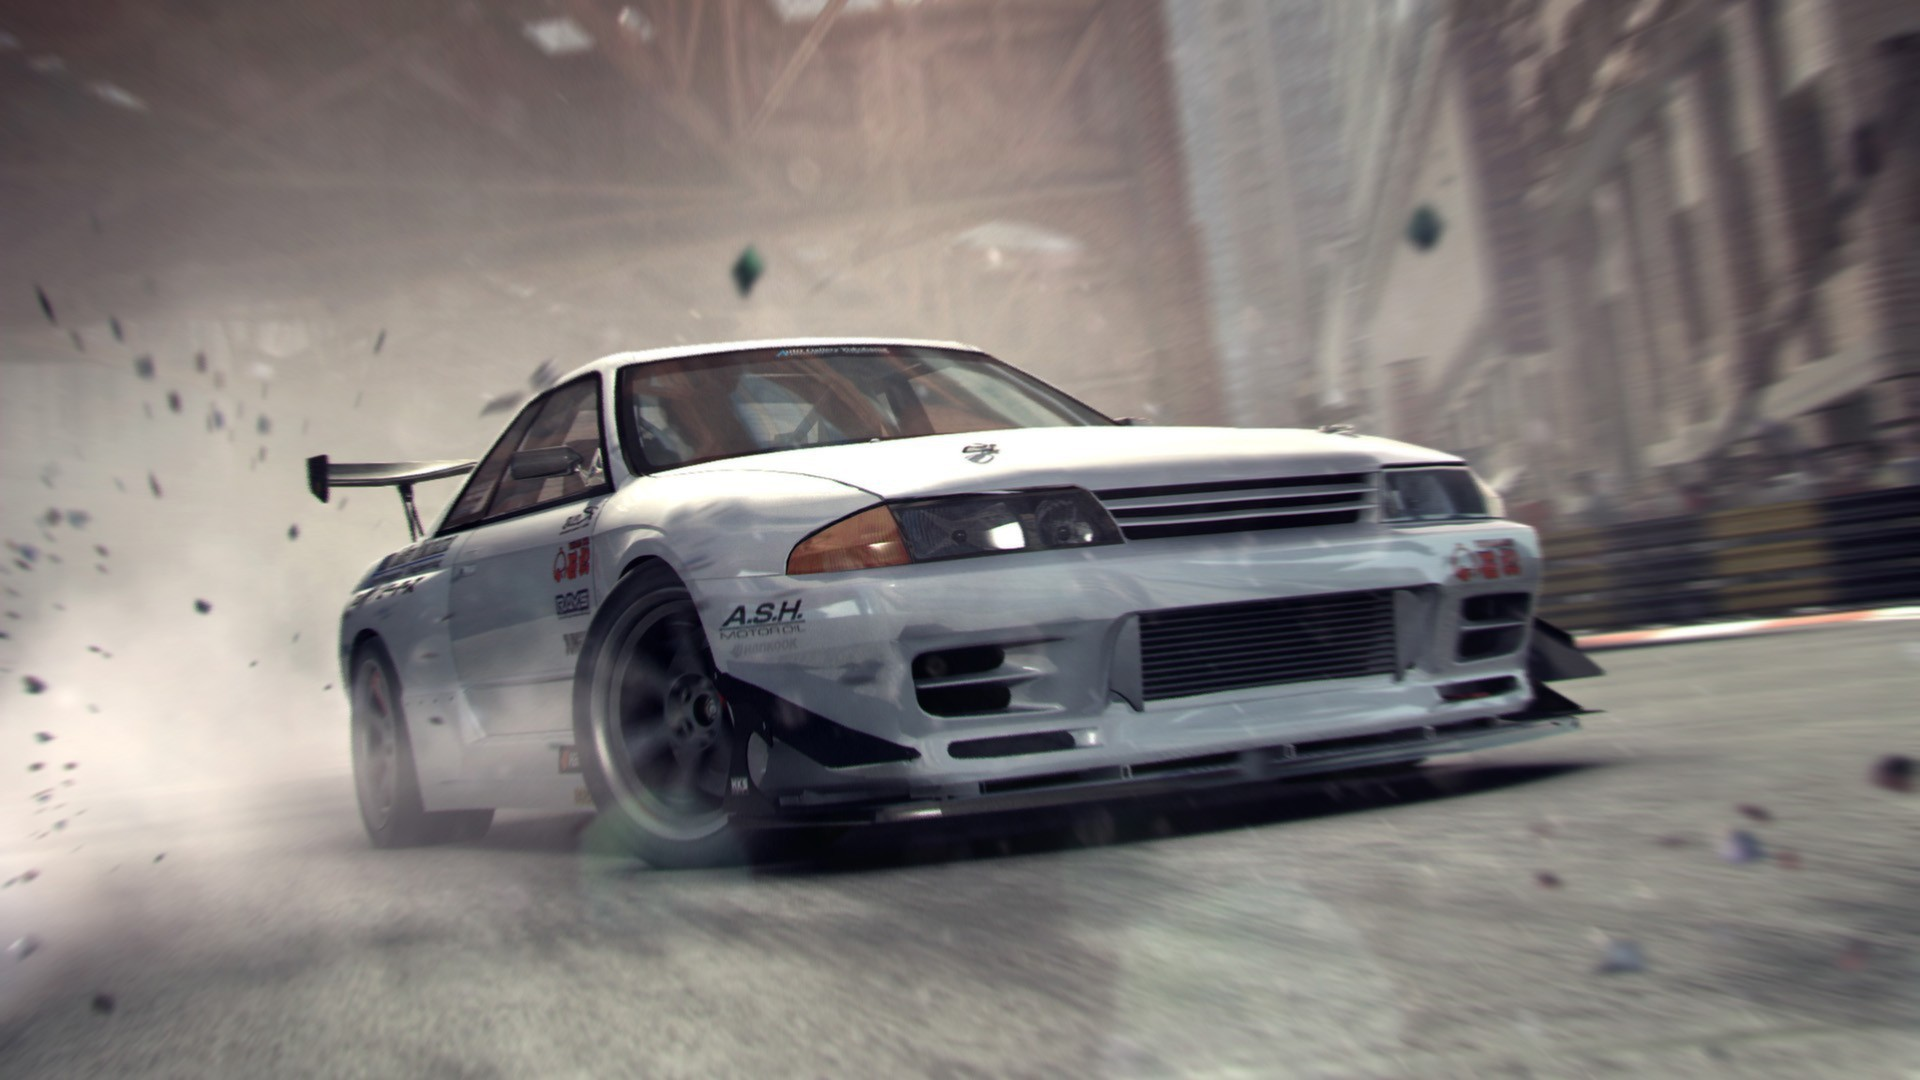 1920x1080 Nissan Skyline R JDM Godzilla Wallpapers HD Desktop and | HD Wallpapers |  Pinterest | Nissan skyline, Nissan and Wallpaper